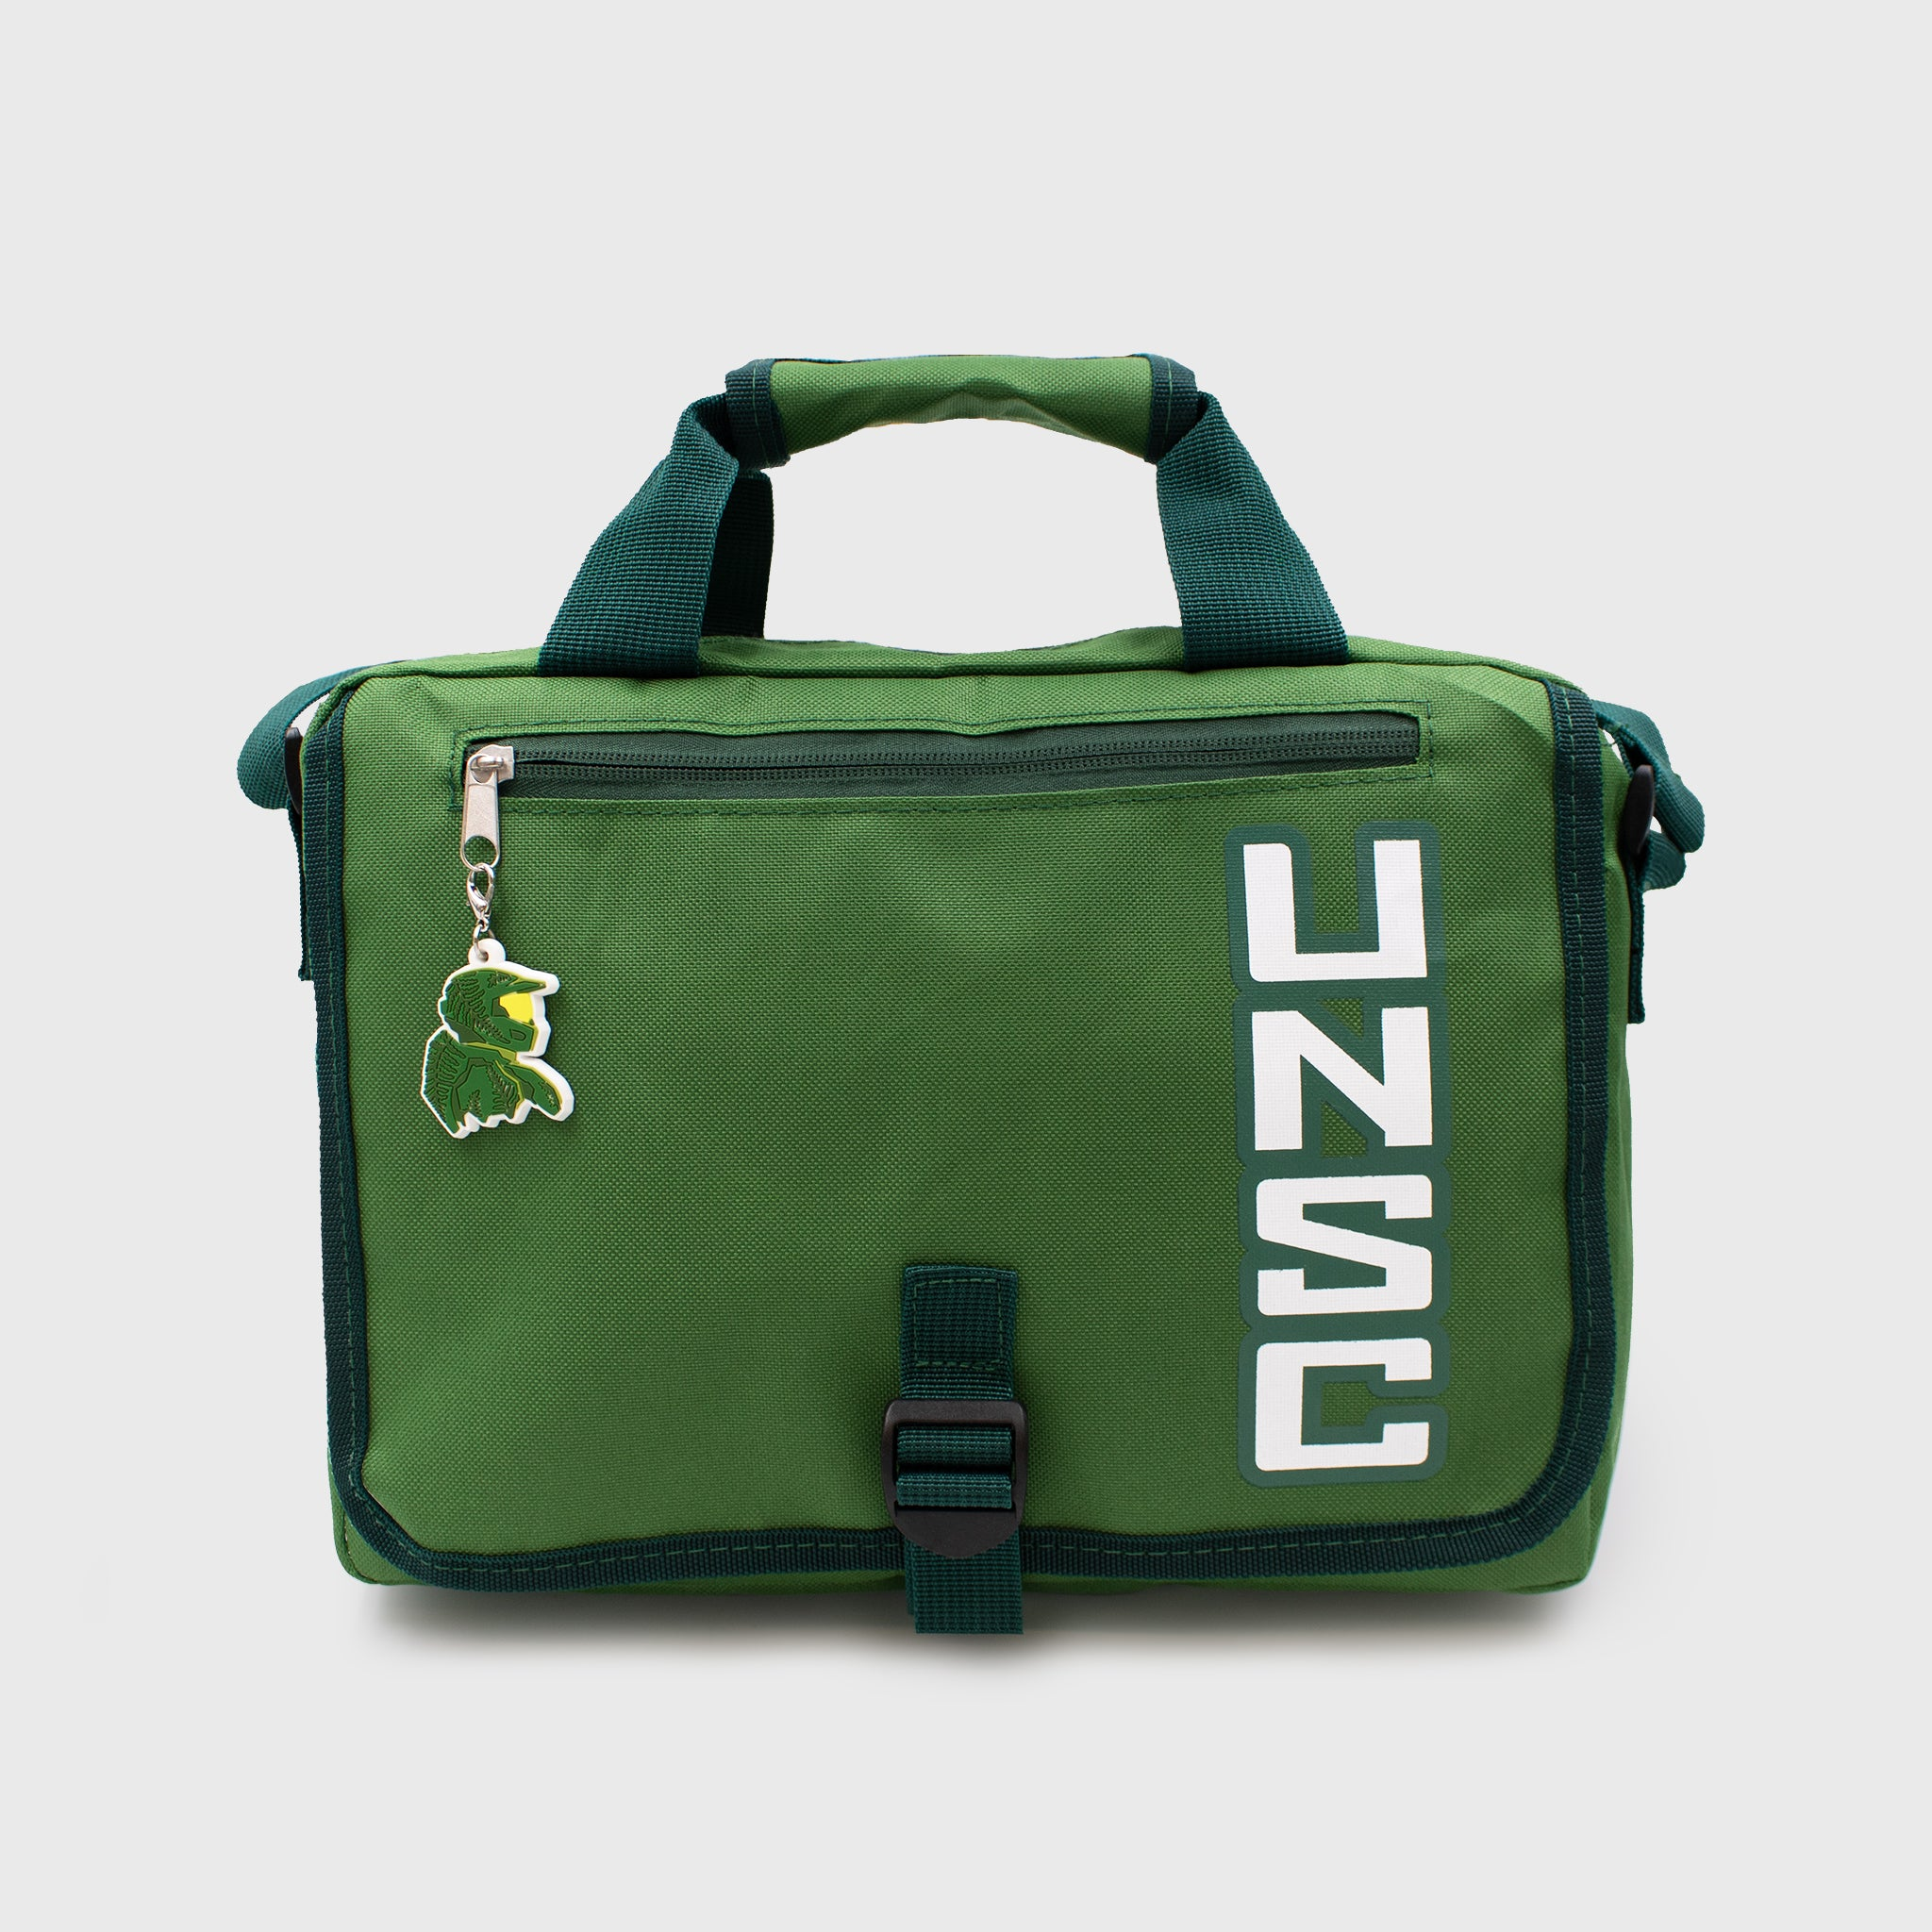 halo infinite master chief video games exclusive collectibles collection gaming culturefly messenger bag accessory